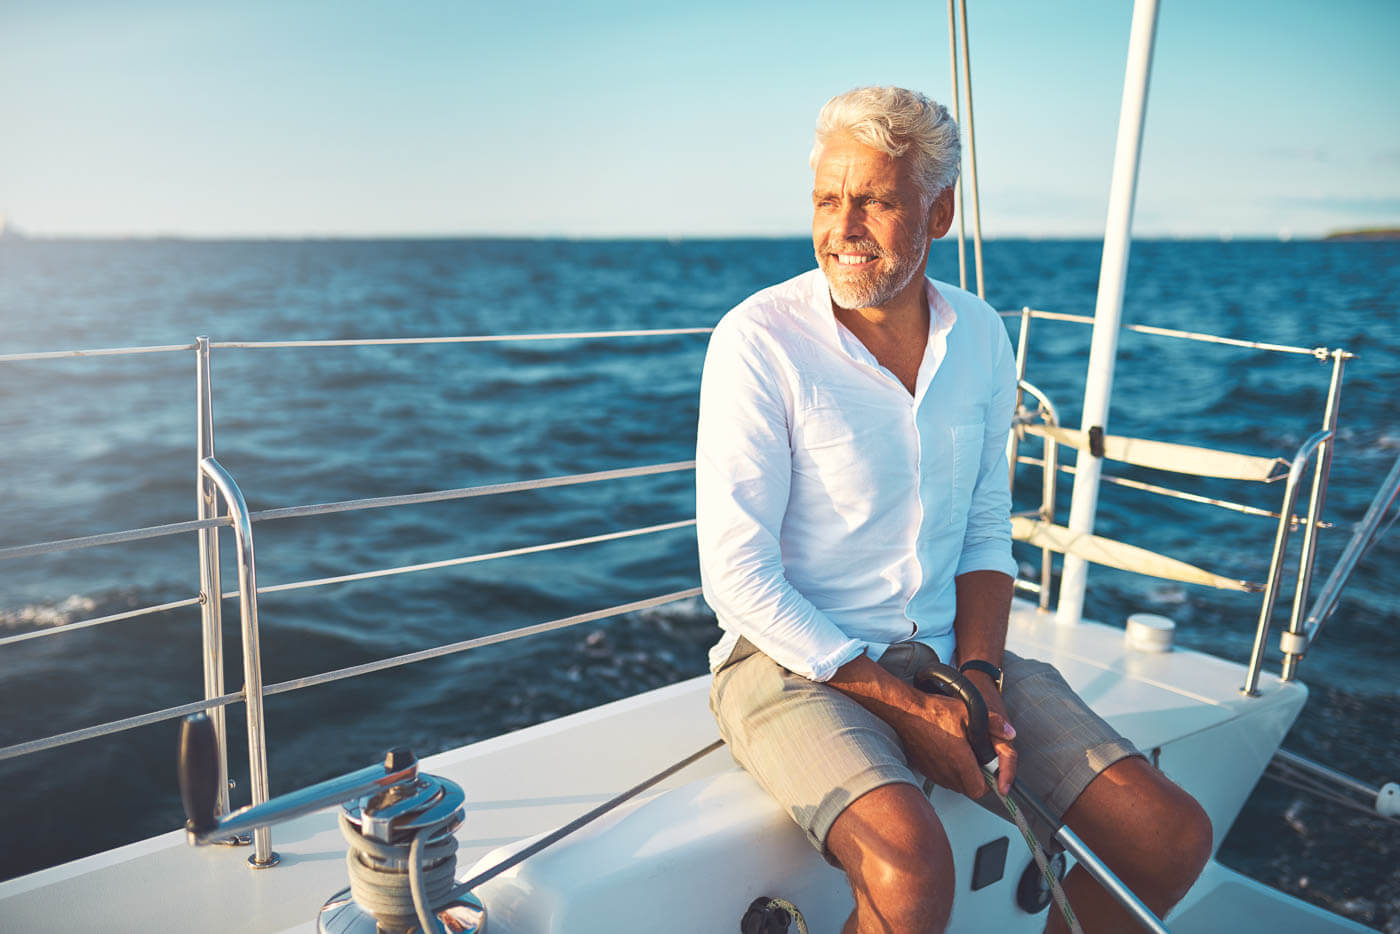 Man Sailing with his new boat